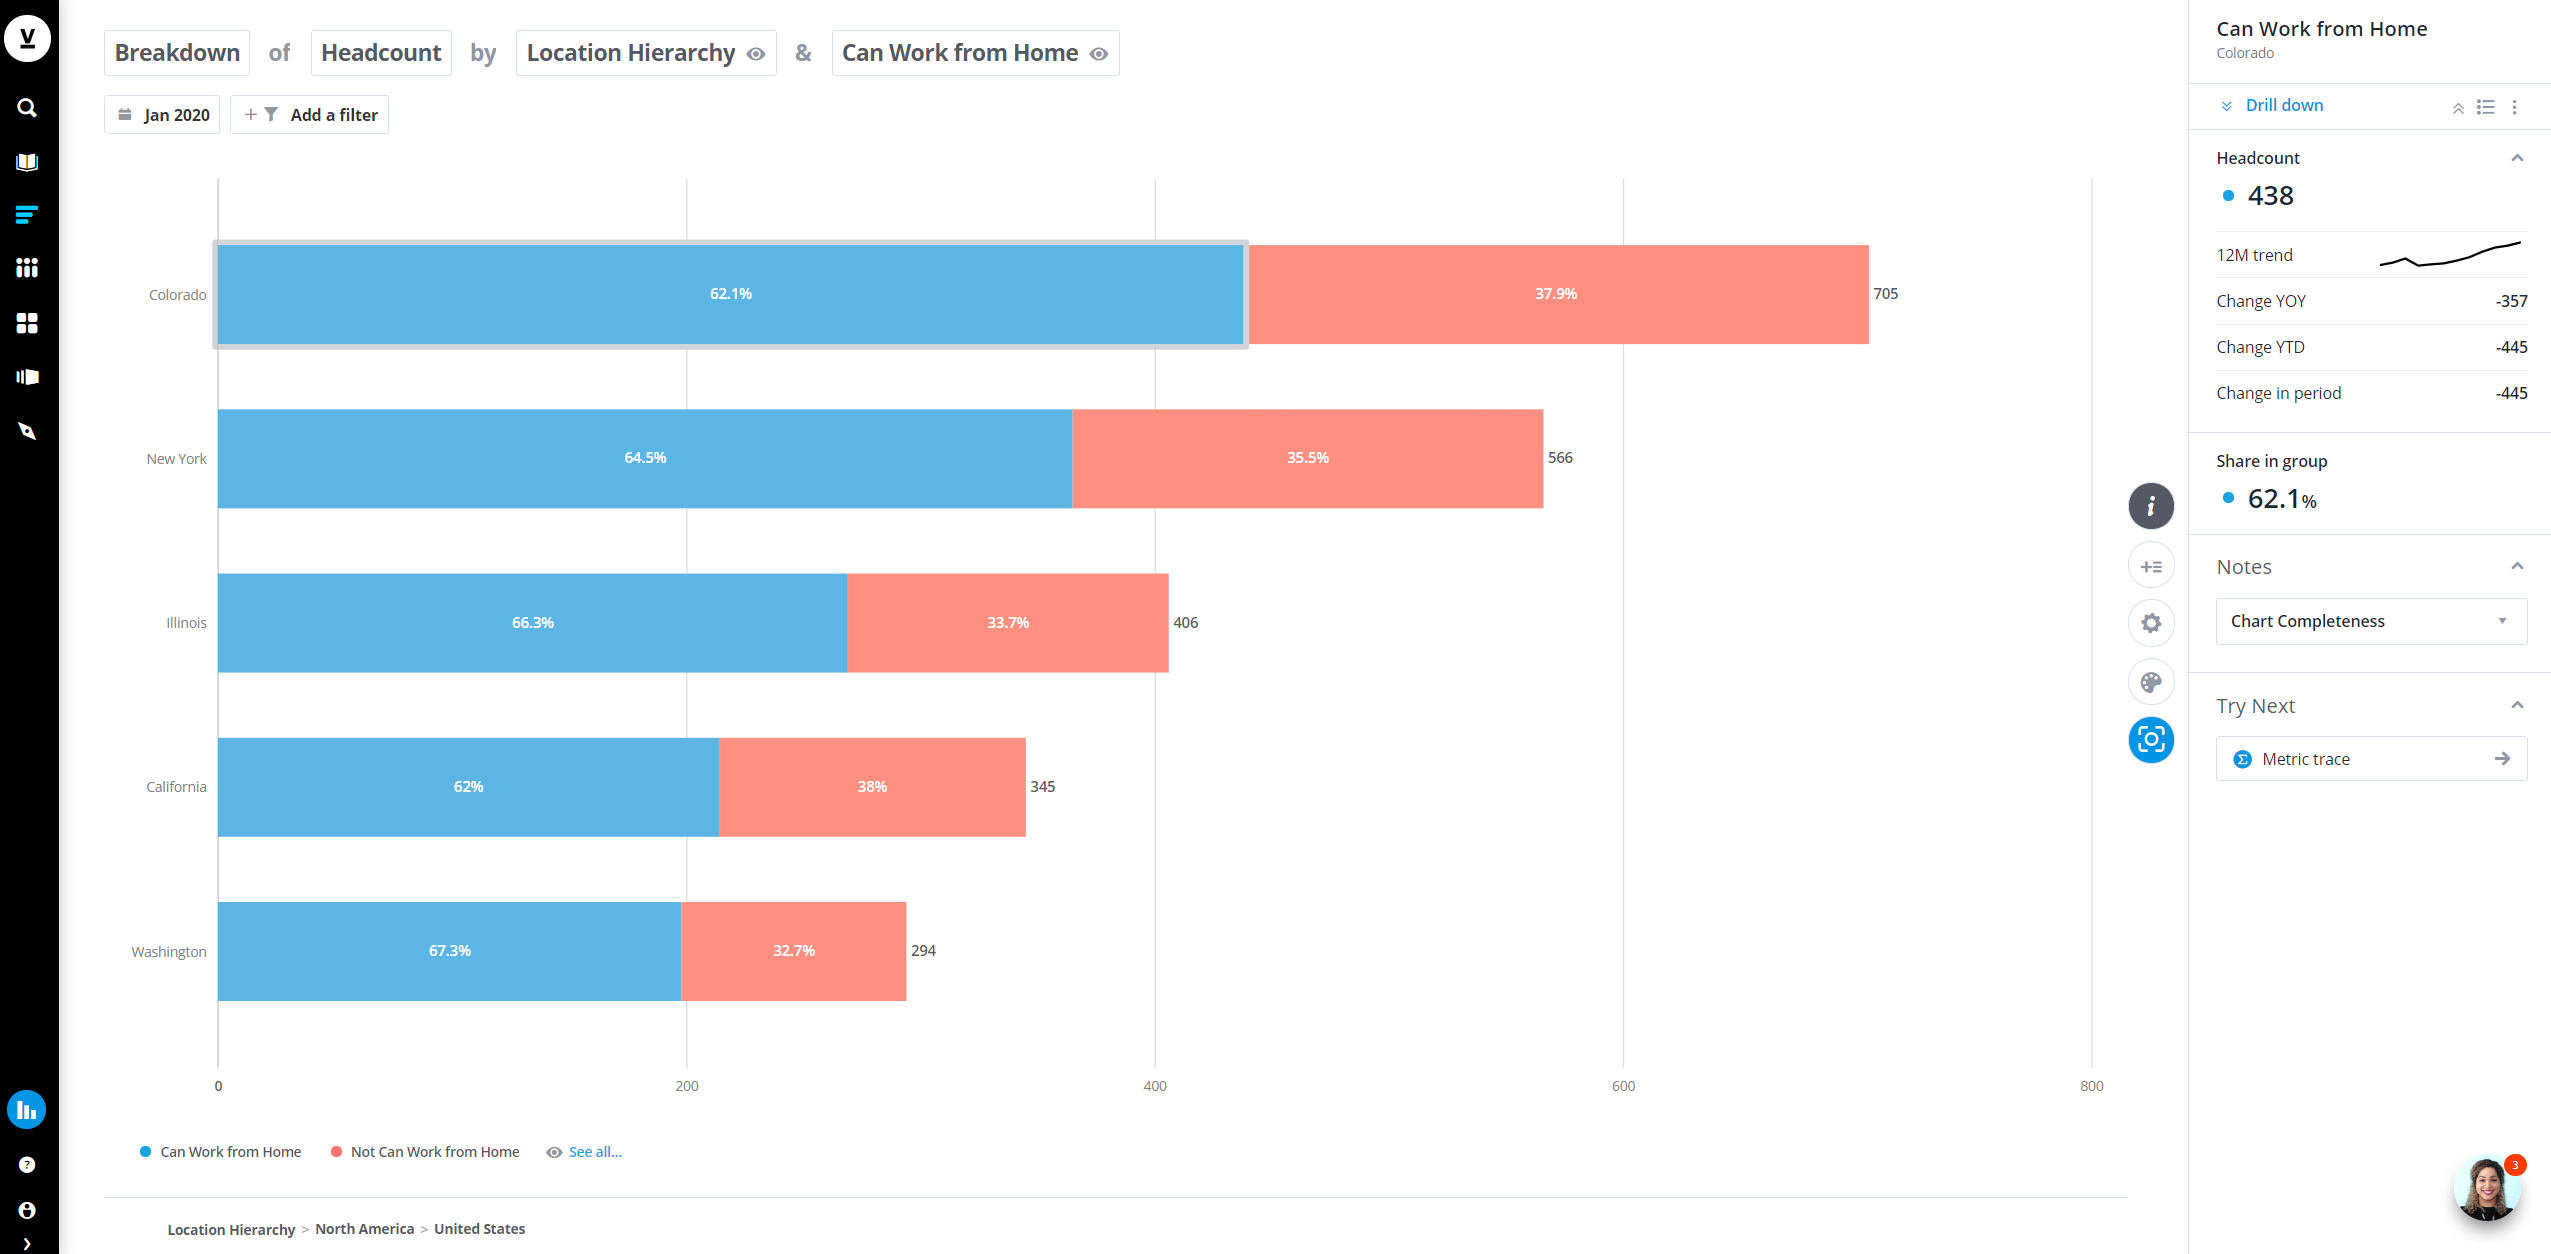 The graph shows the percentage of the population in each location that is ready to work remotely.